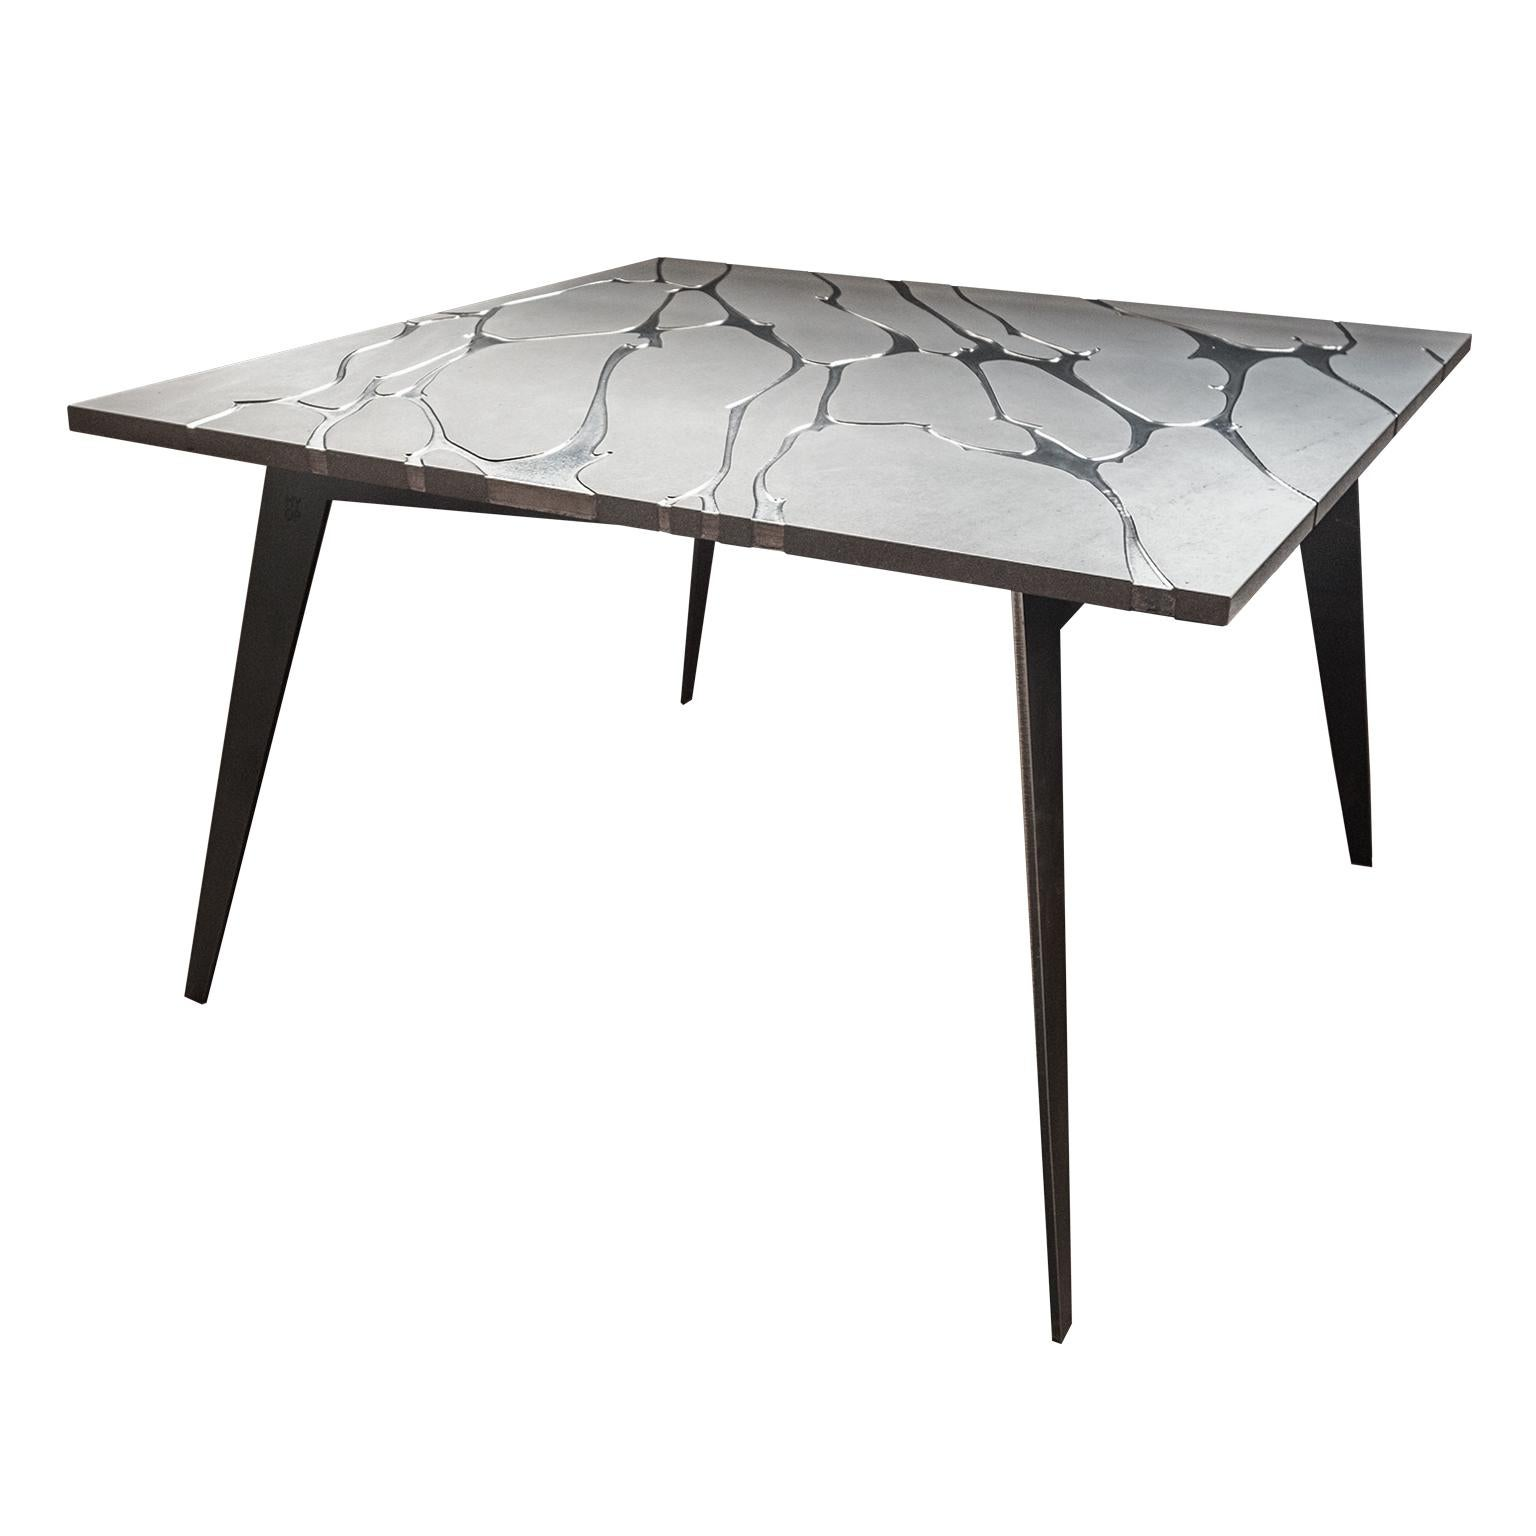 Modern Square Table in Lava Stone and Steel, FilodiFumo 2nd